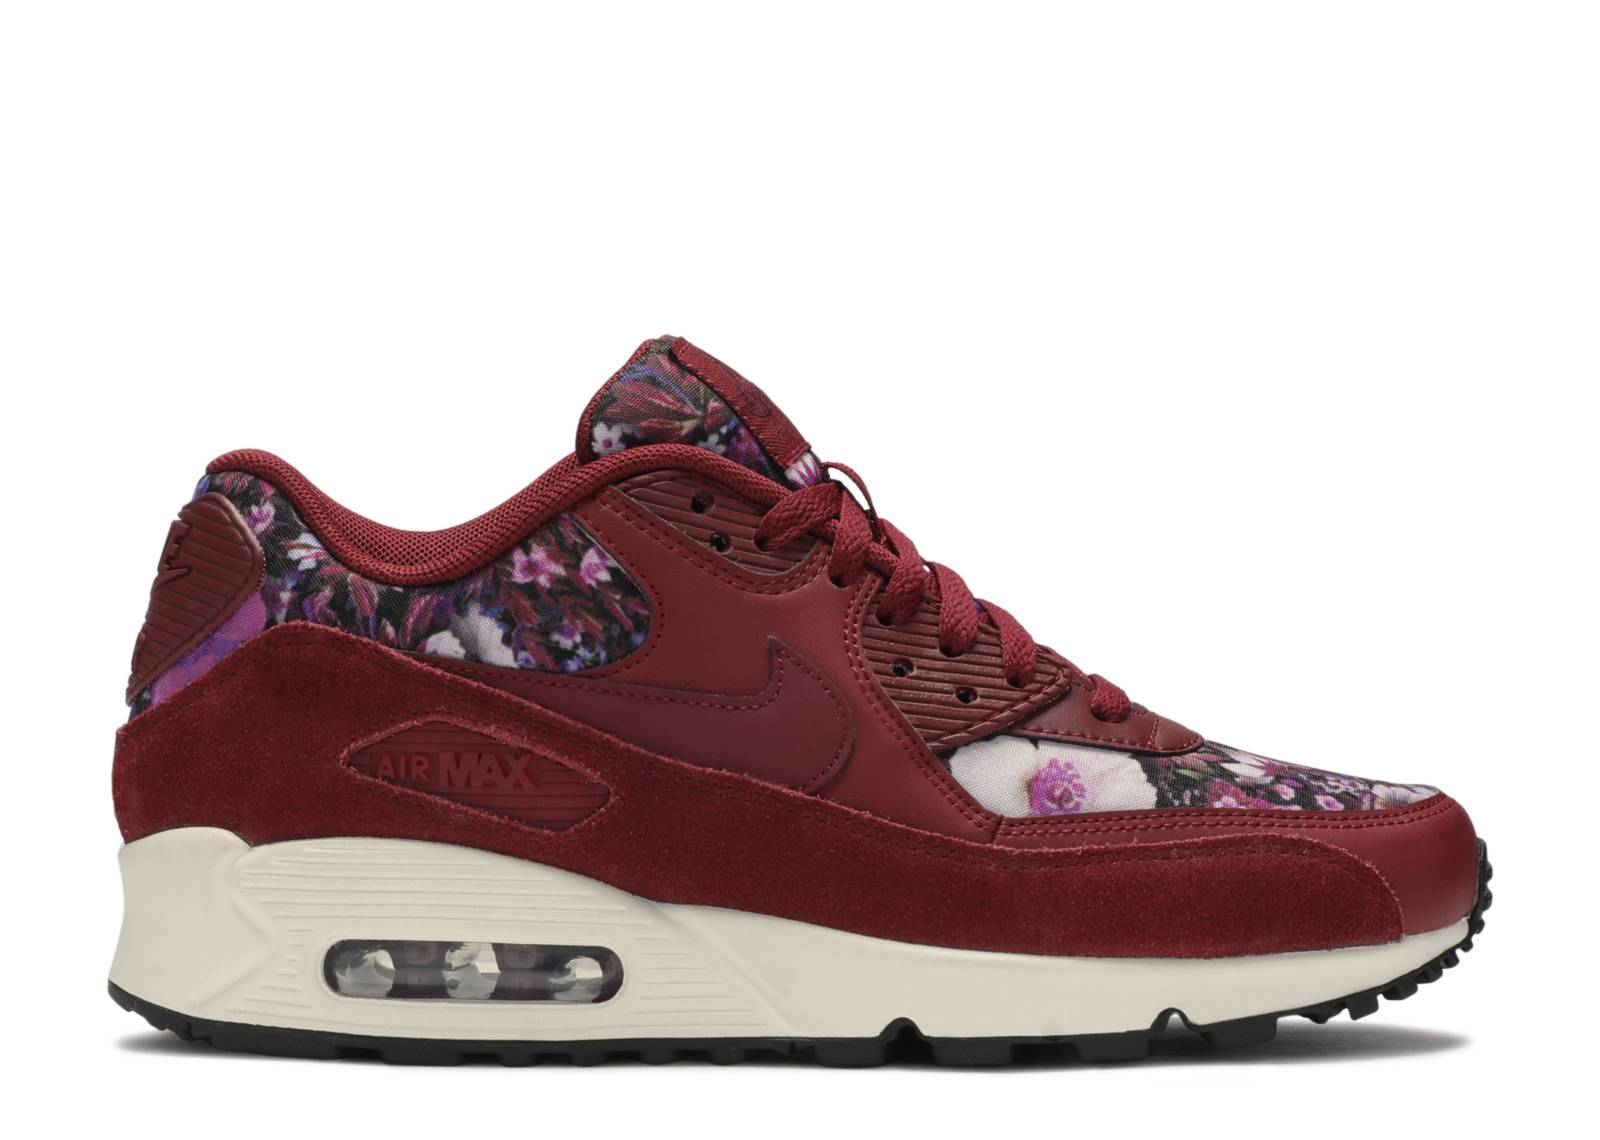 save off 93979 69f4e Wmns Air Max 90 Se - Nike - 881105 600 - team red/team red ...